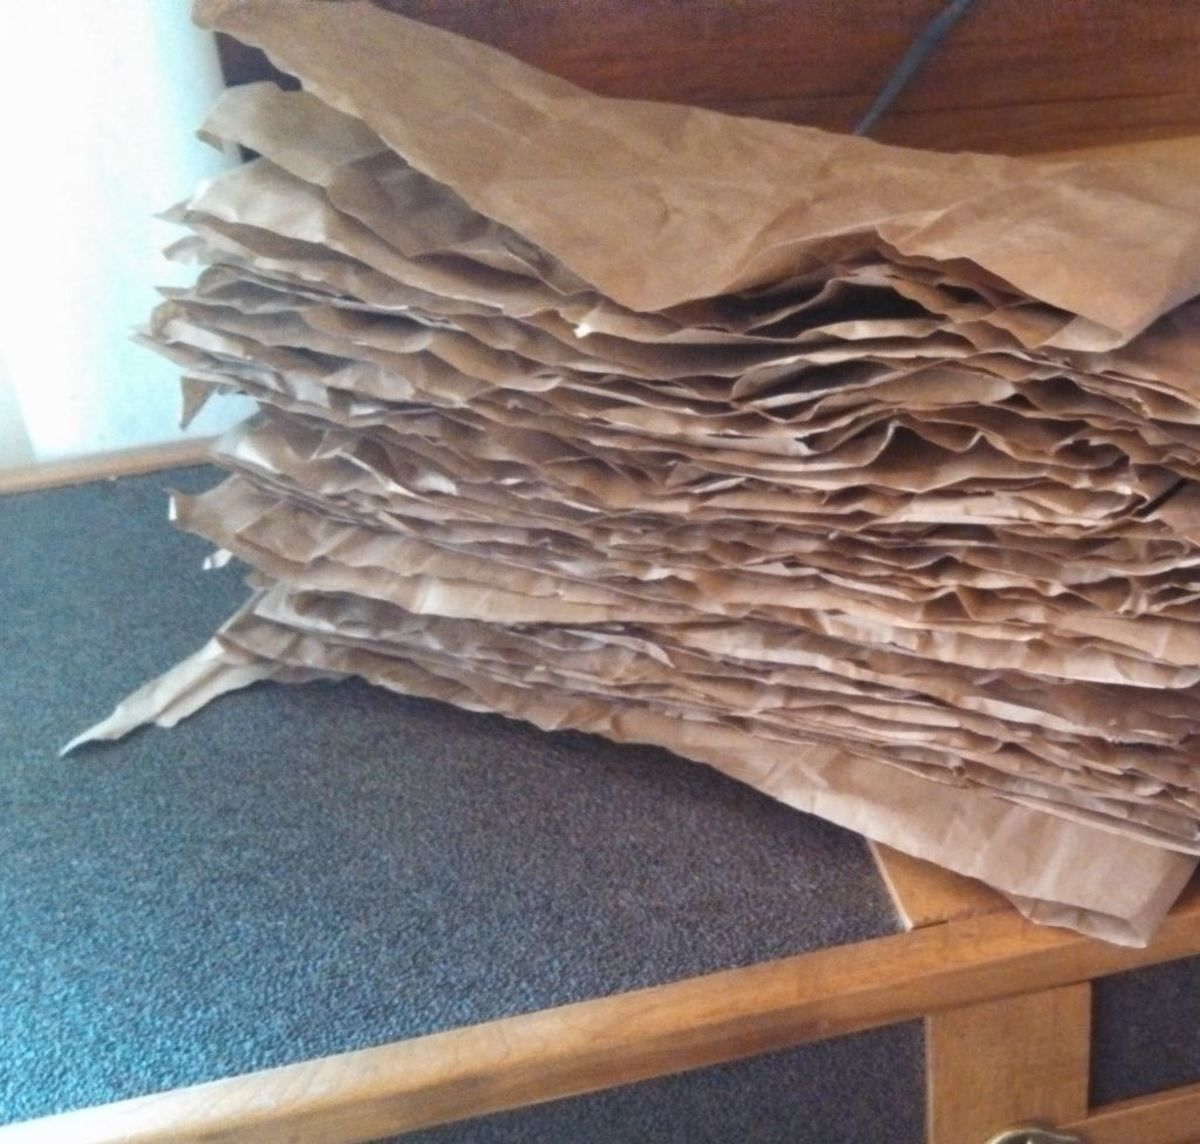 ... gets cut into sections, folded, and stacked neatly in the woodbox.